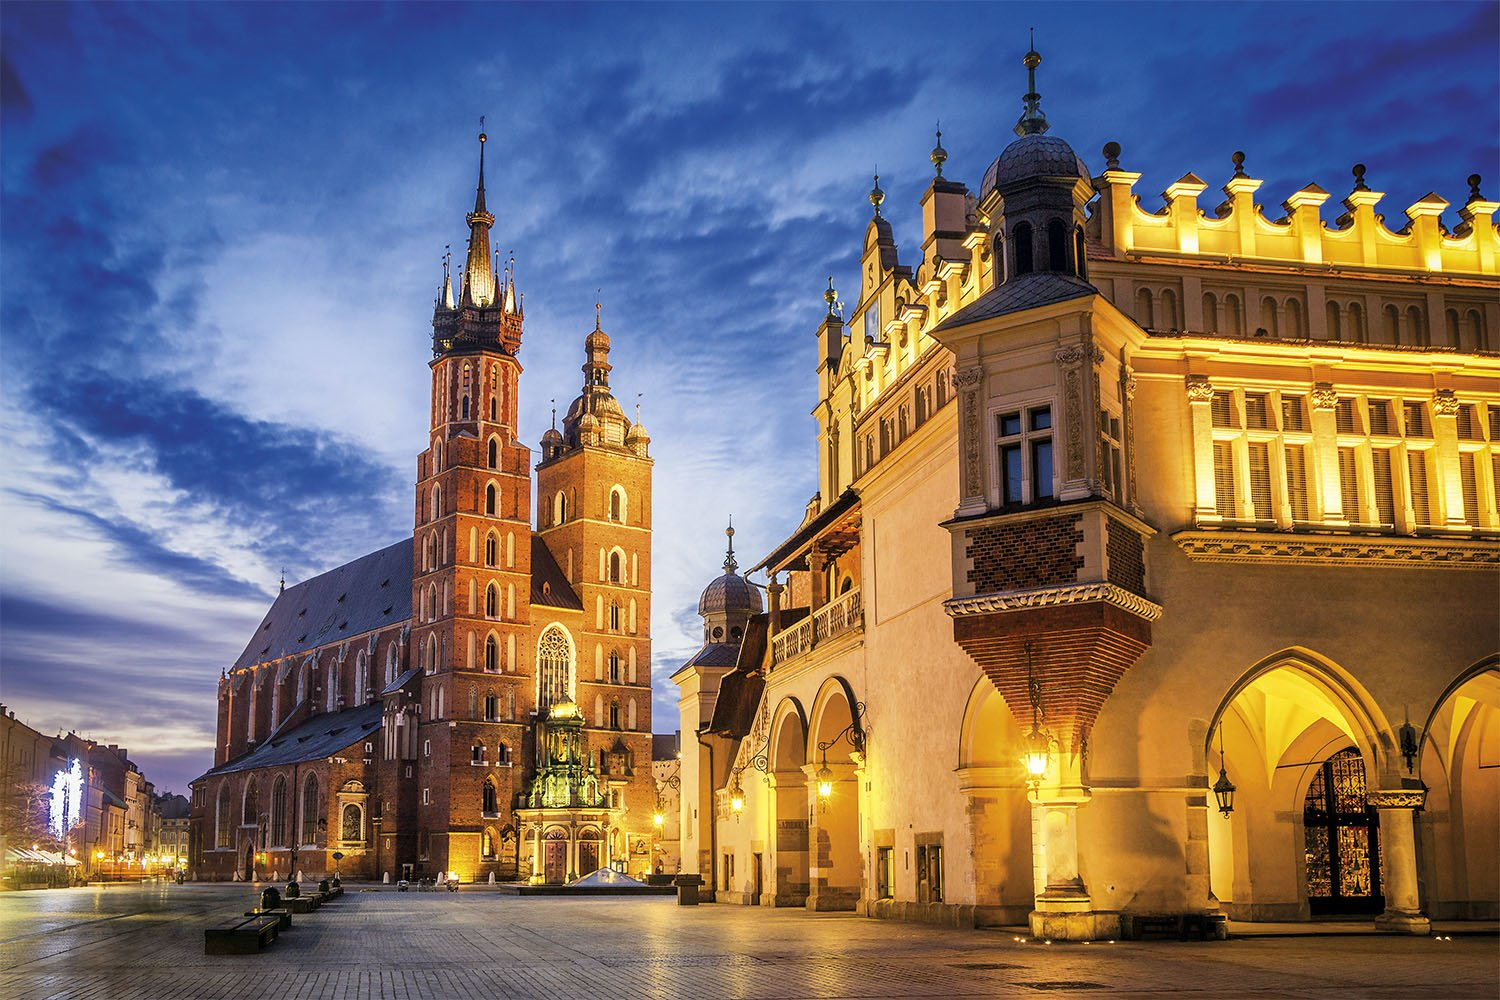 Cracovia, capital humanista de Polonia